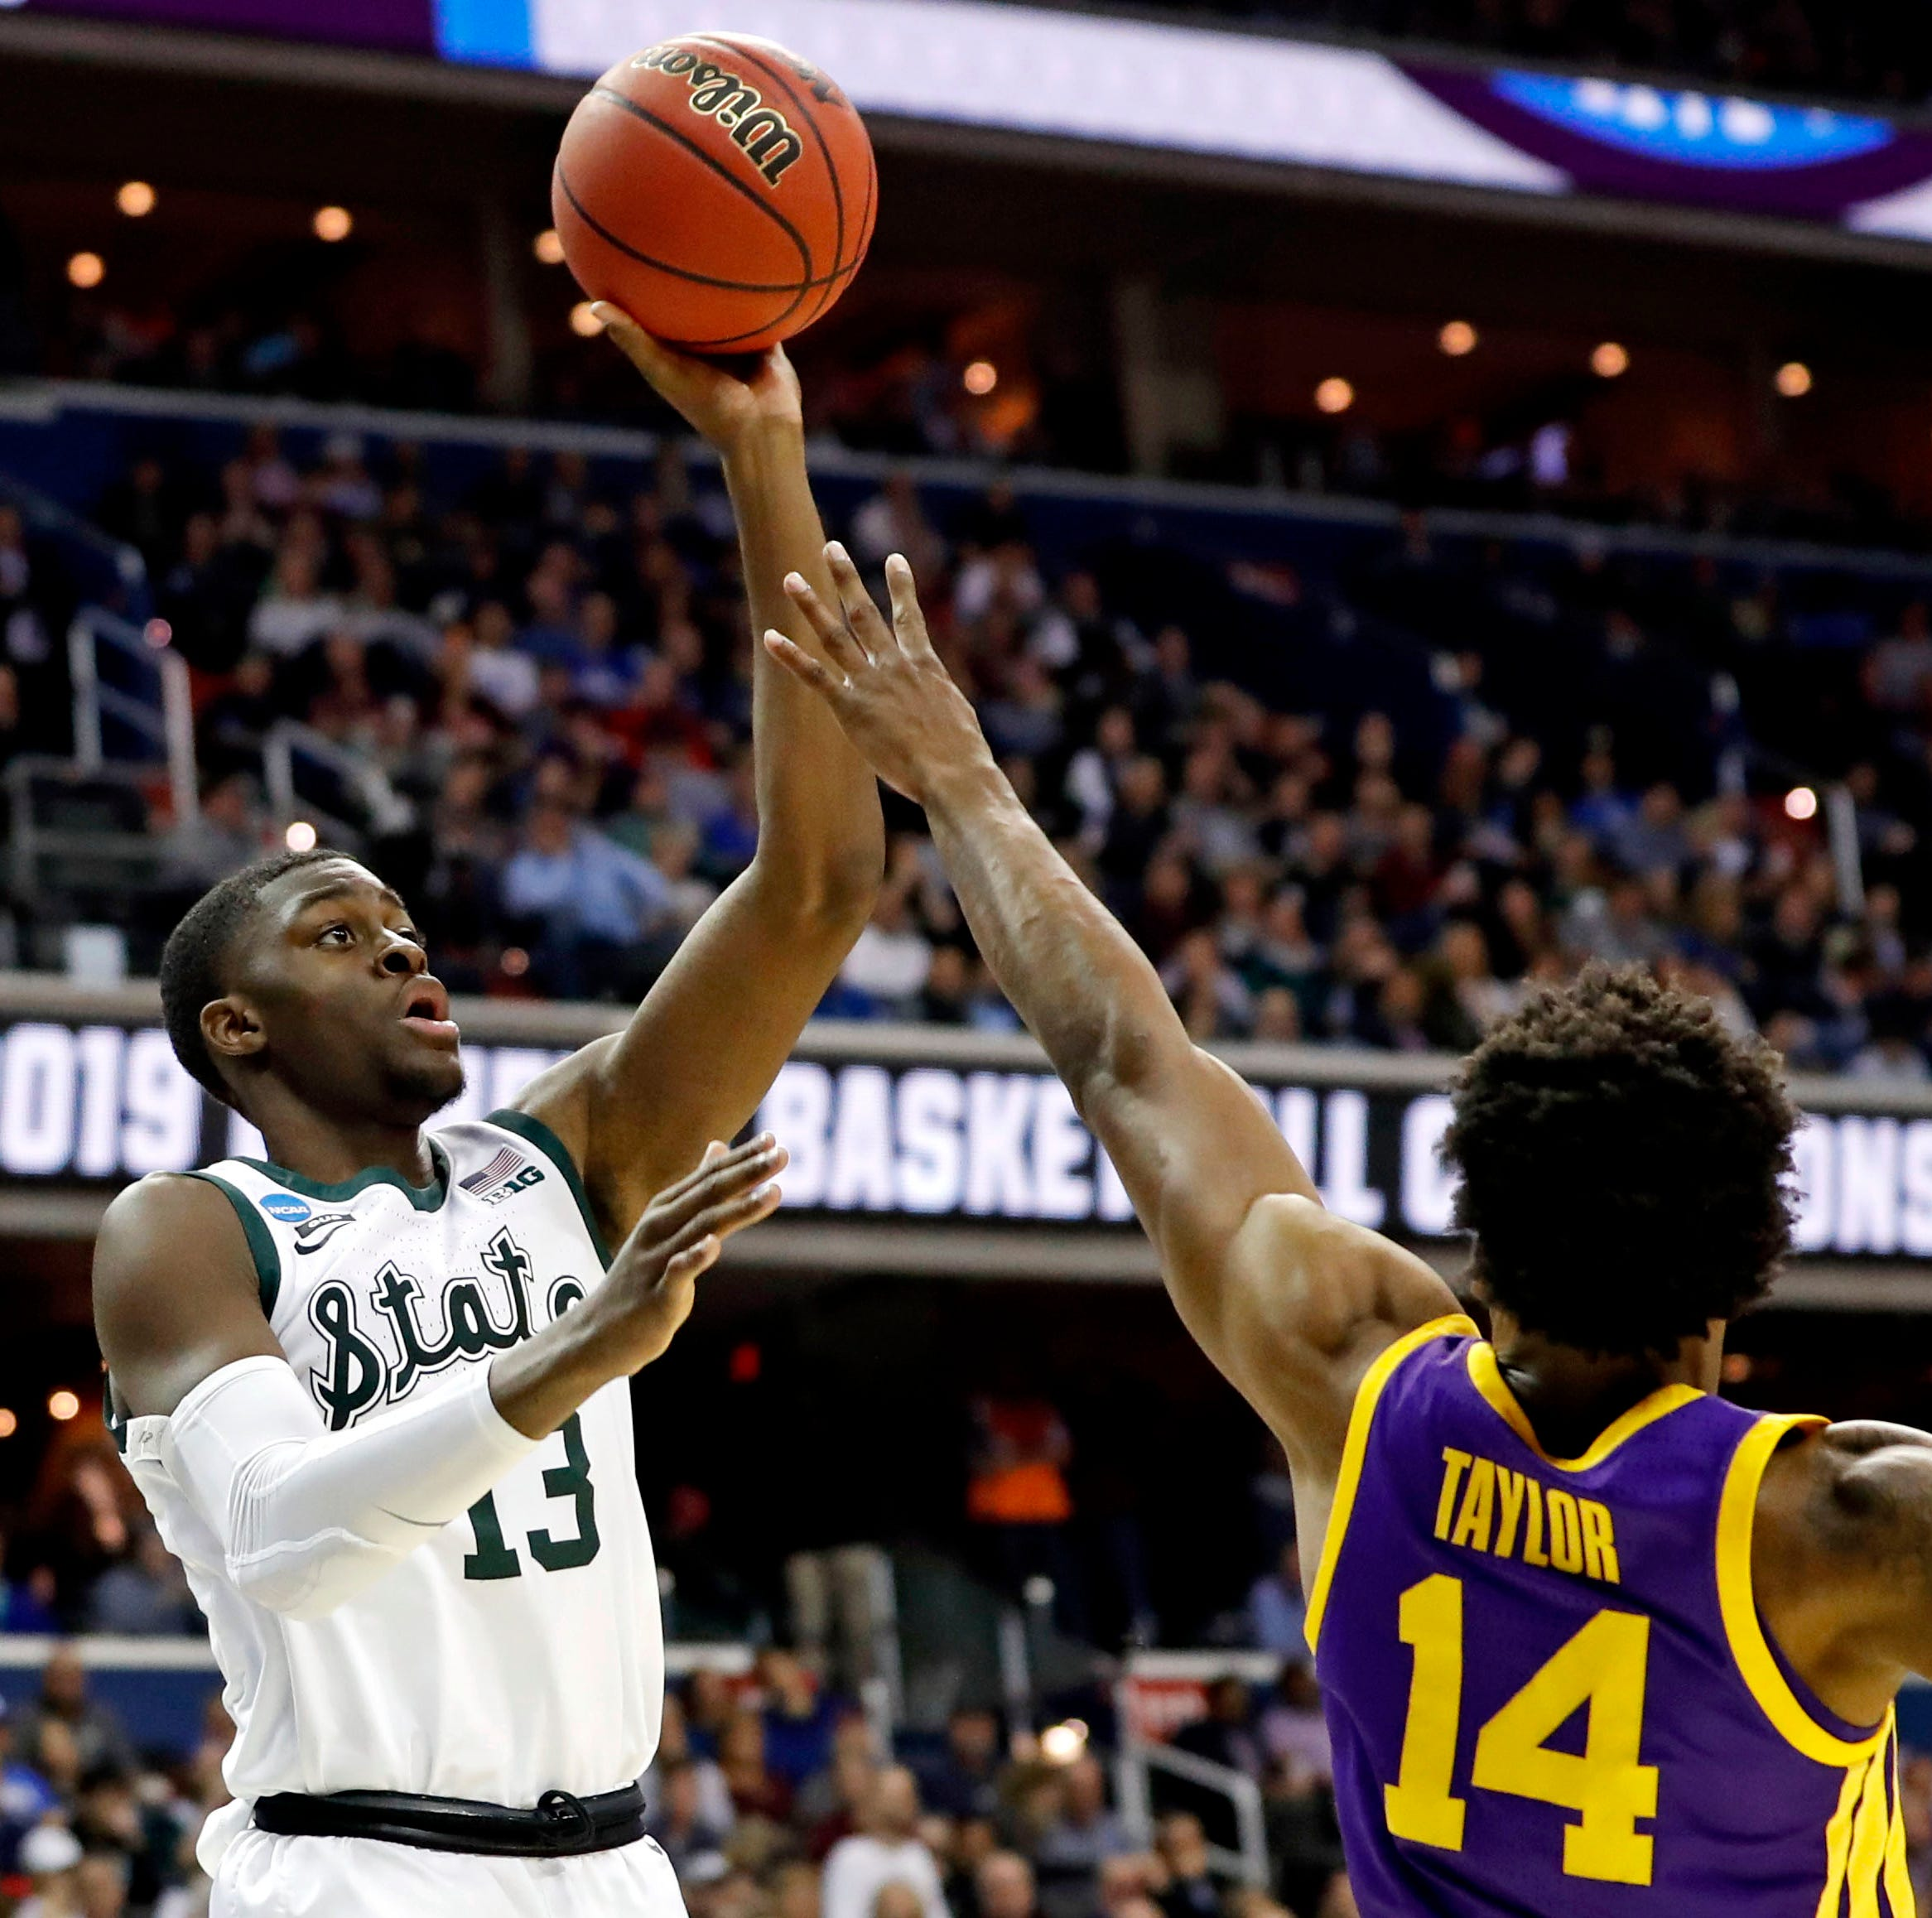 LSU was beaten at its own game of offensive rebounding with a vengeance by Michigan State